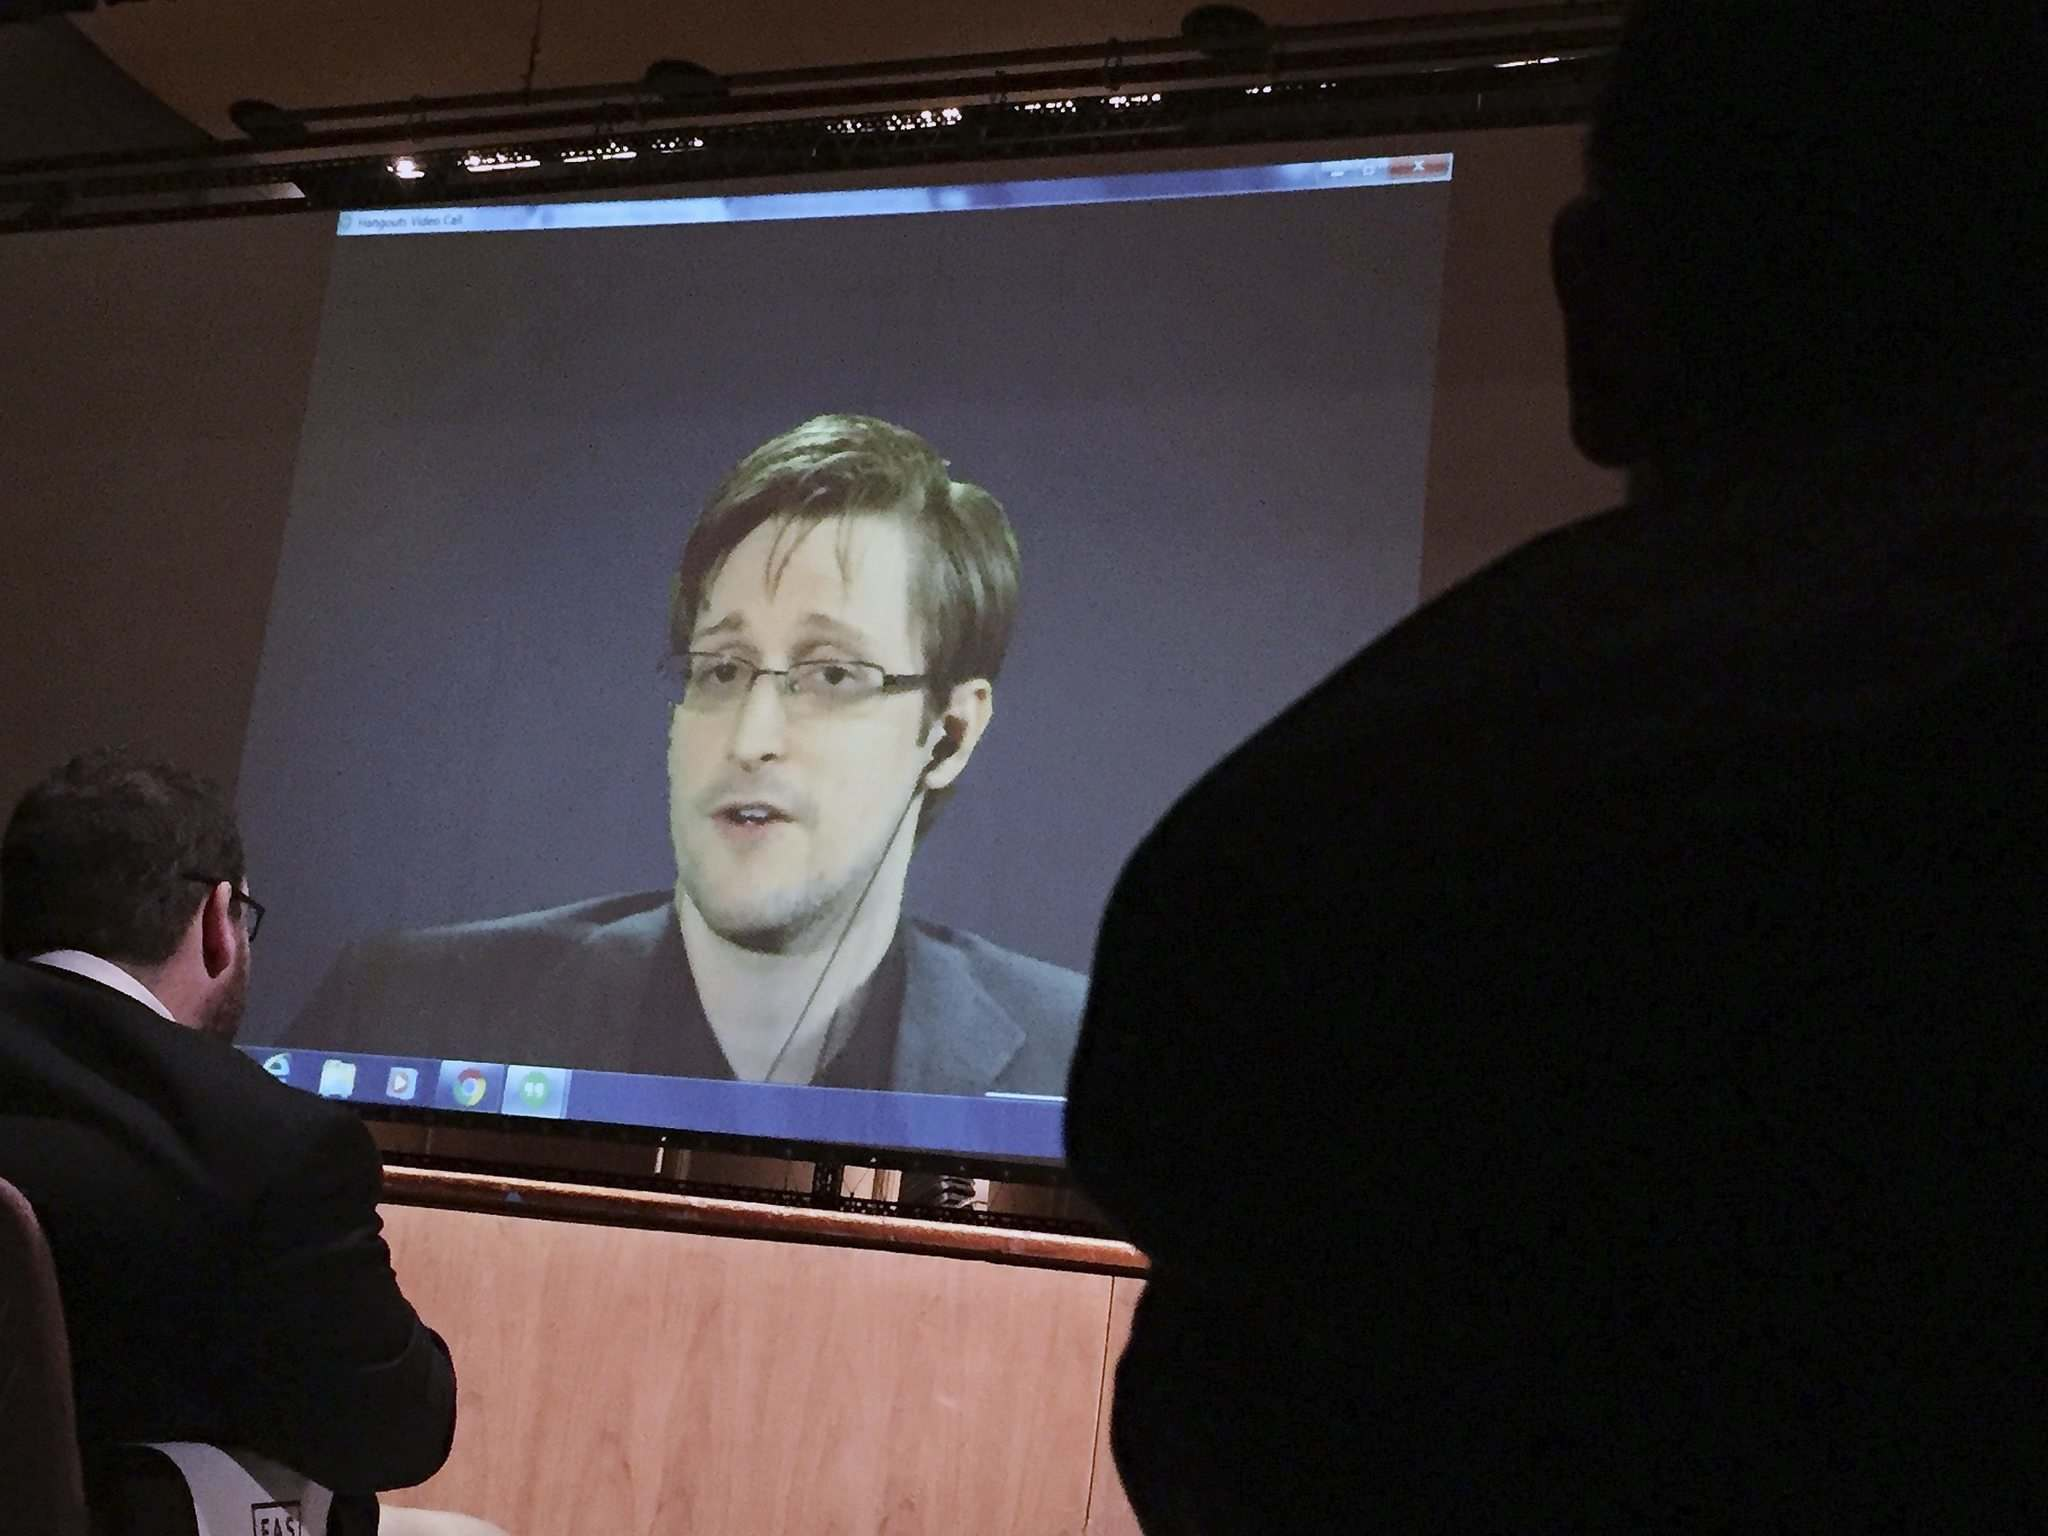 JULIET LINDERMAN / THE ASSOCIATED PRESS FILES</p><p>Former U.S. National Security Agency contractor Edward Snowden speaks via video conference to people in the Johns Hopkins University auditorium in 2016.</p>